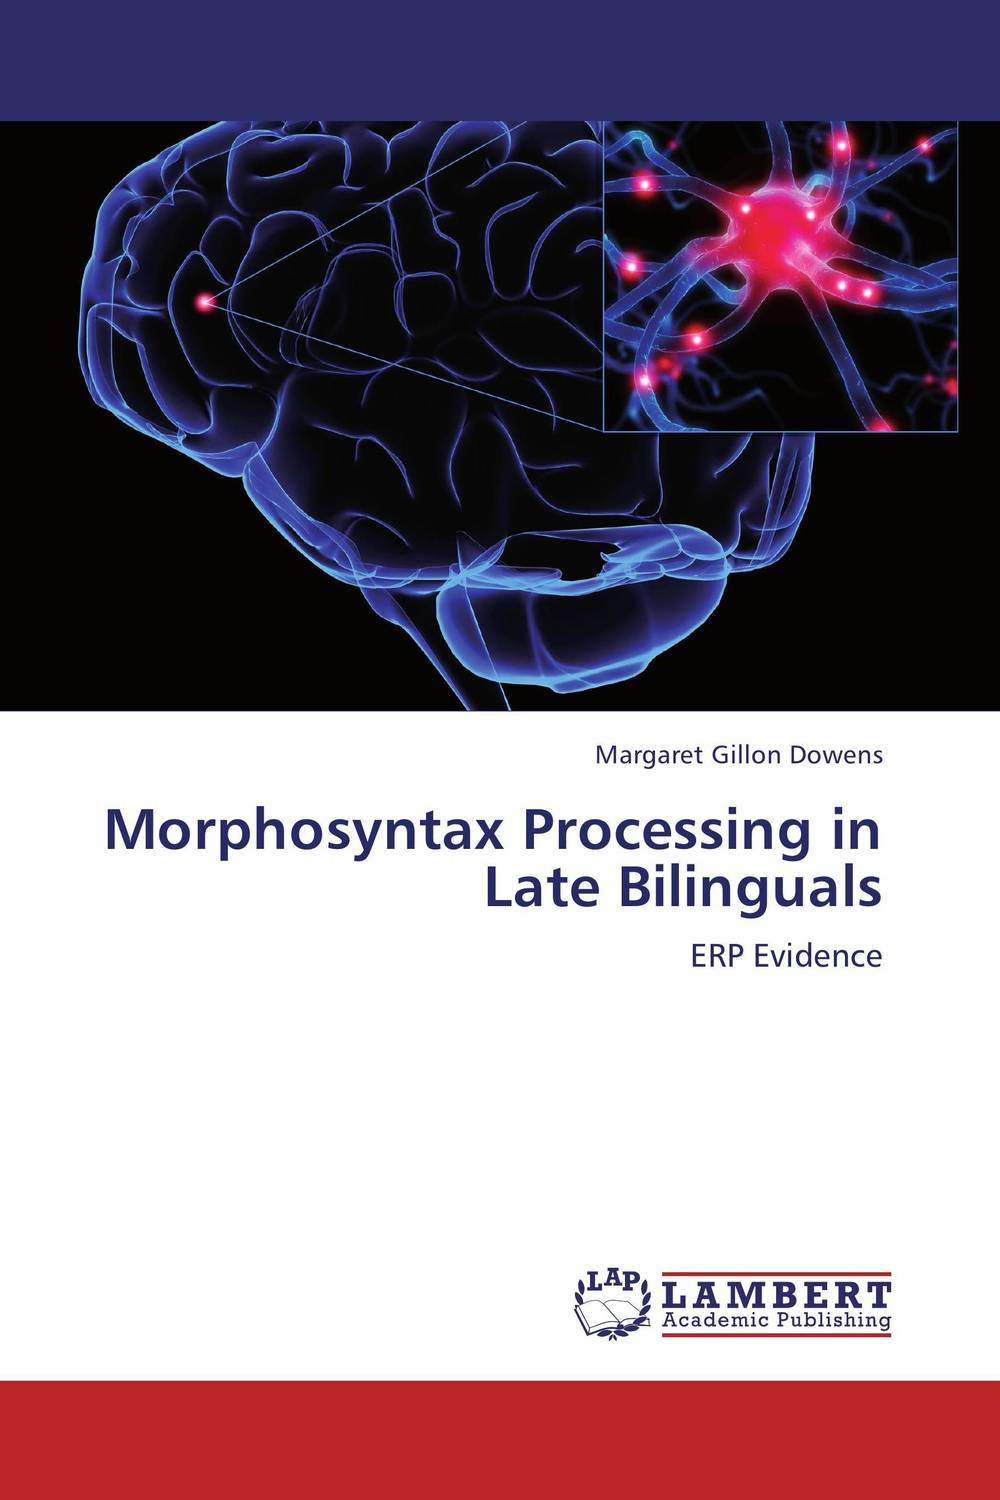 Morphosyntax Processing in Late Bilinguals the morphosyntax of portuguese and spanish in latin america